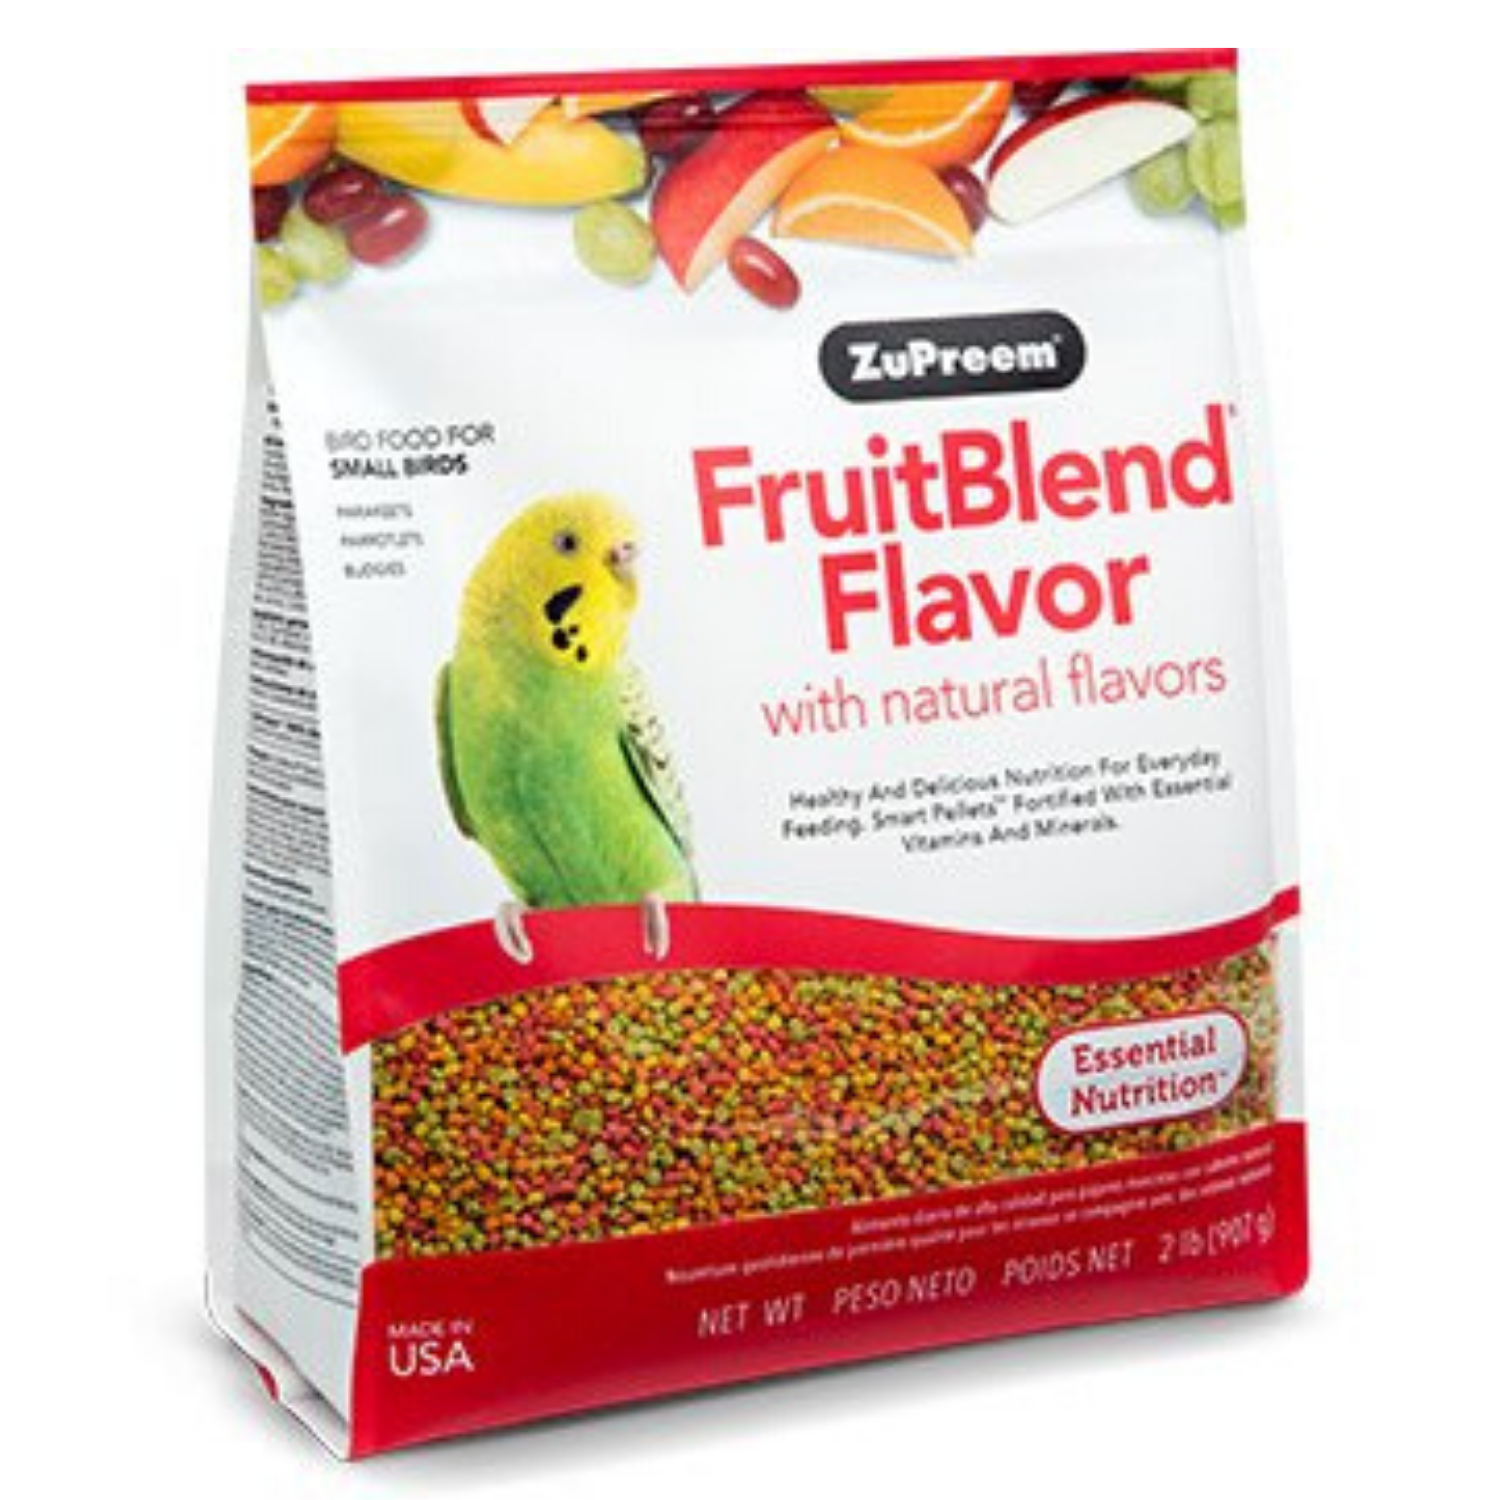 ZuPreem FruitBlend Flavour with Natural Flavors - Small Birds - 397g / 907g / 4.54kg